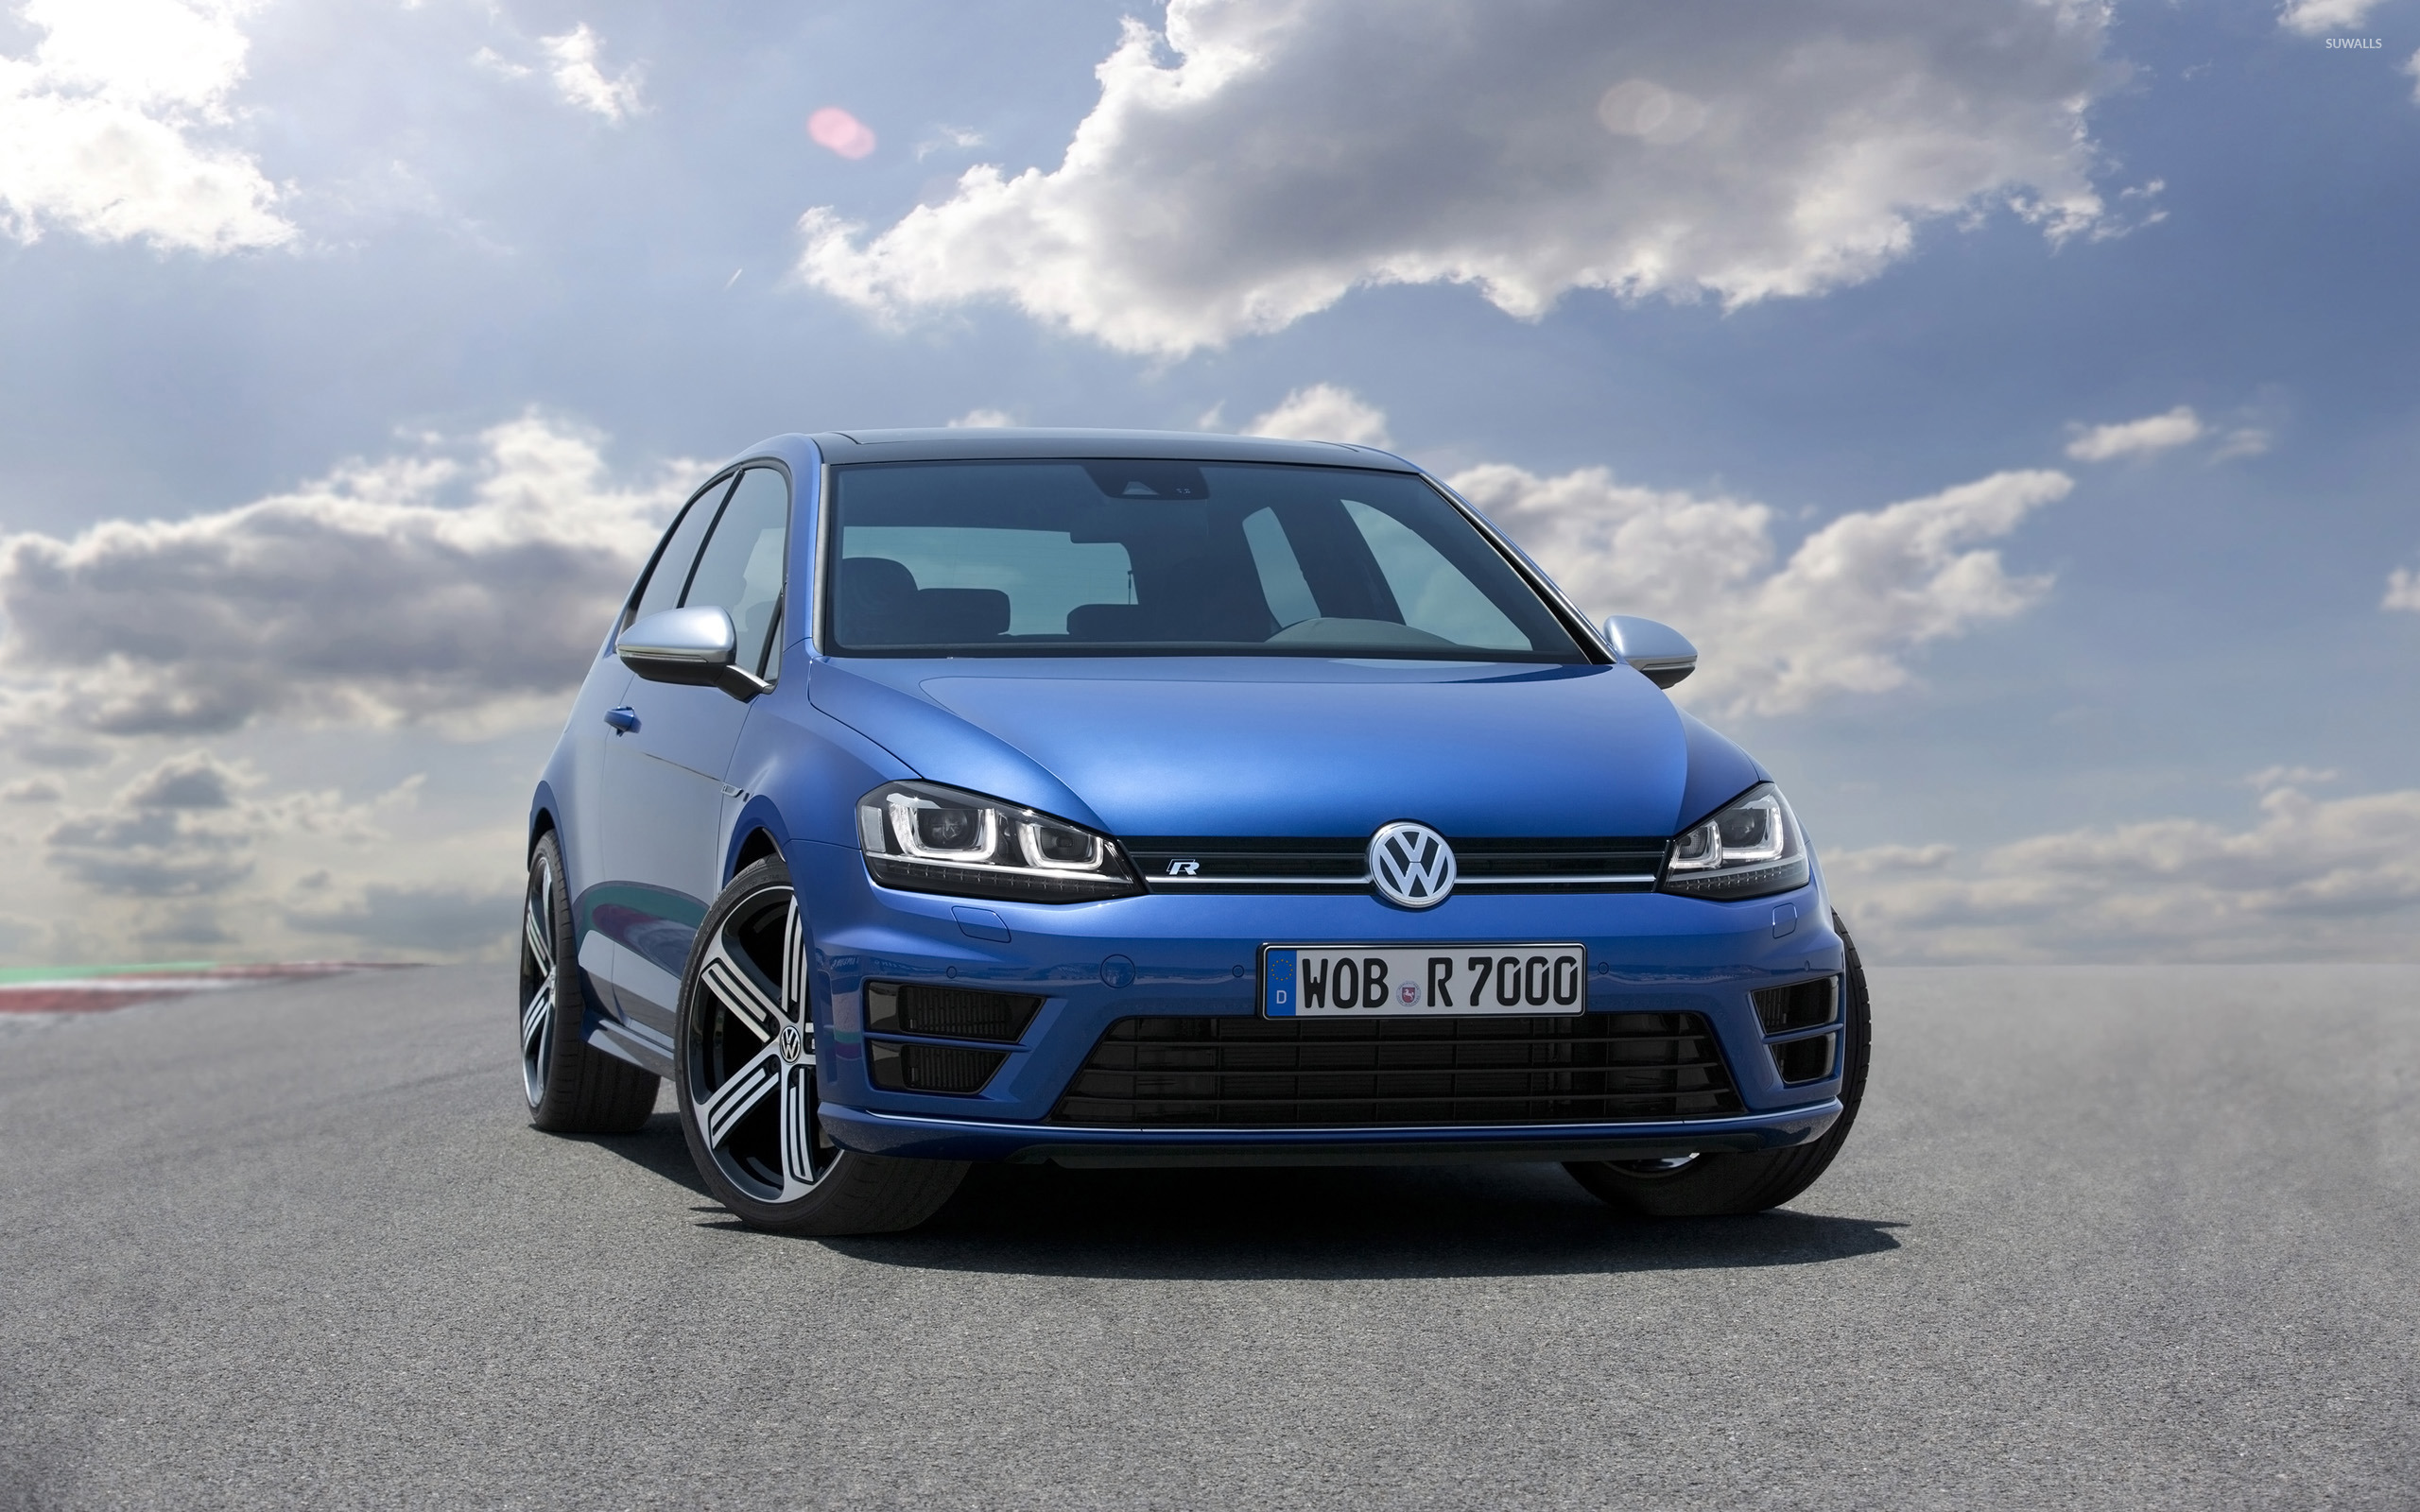 2014 Volkswagen Golf R wallpaper